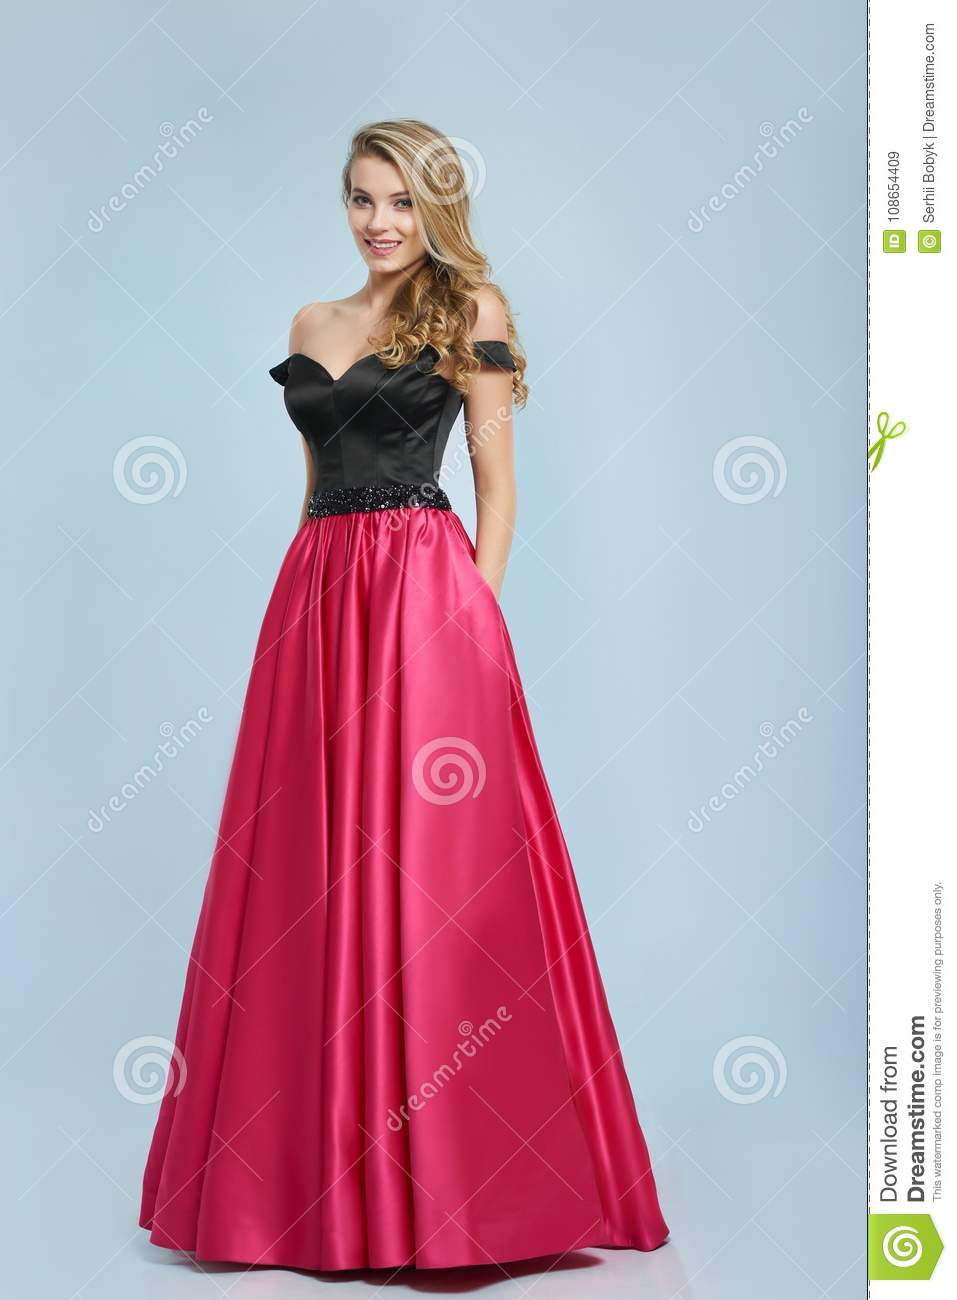 What Color Prom Dresses Look Good On Blondes - raveitsafe